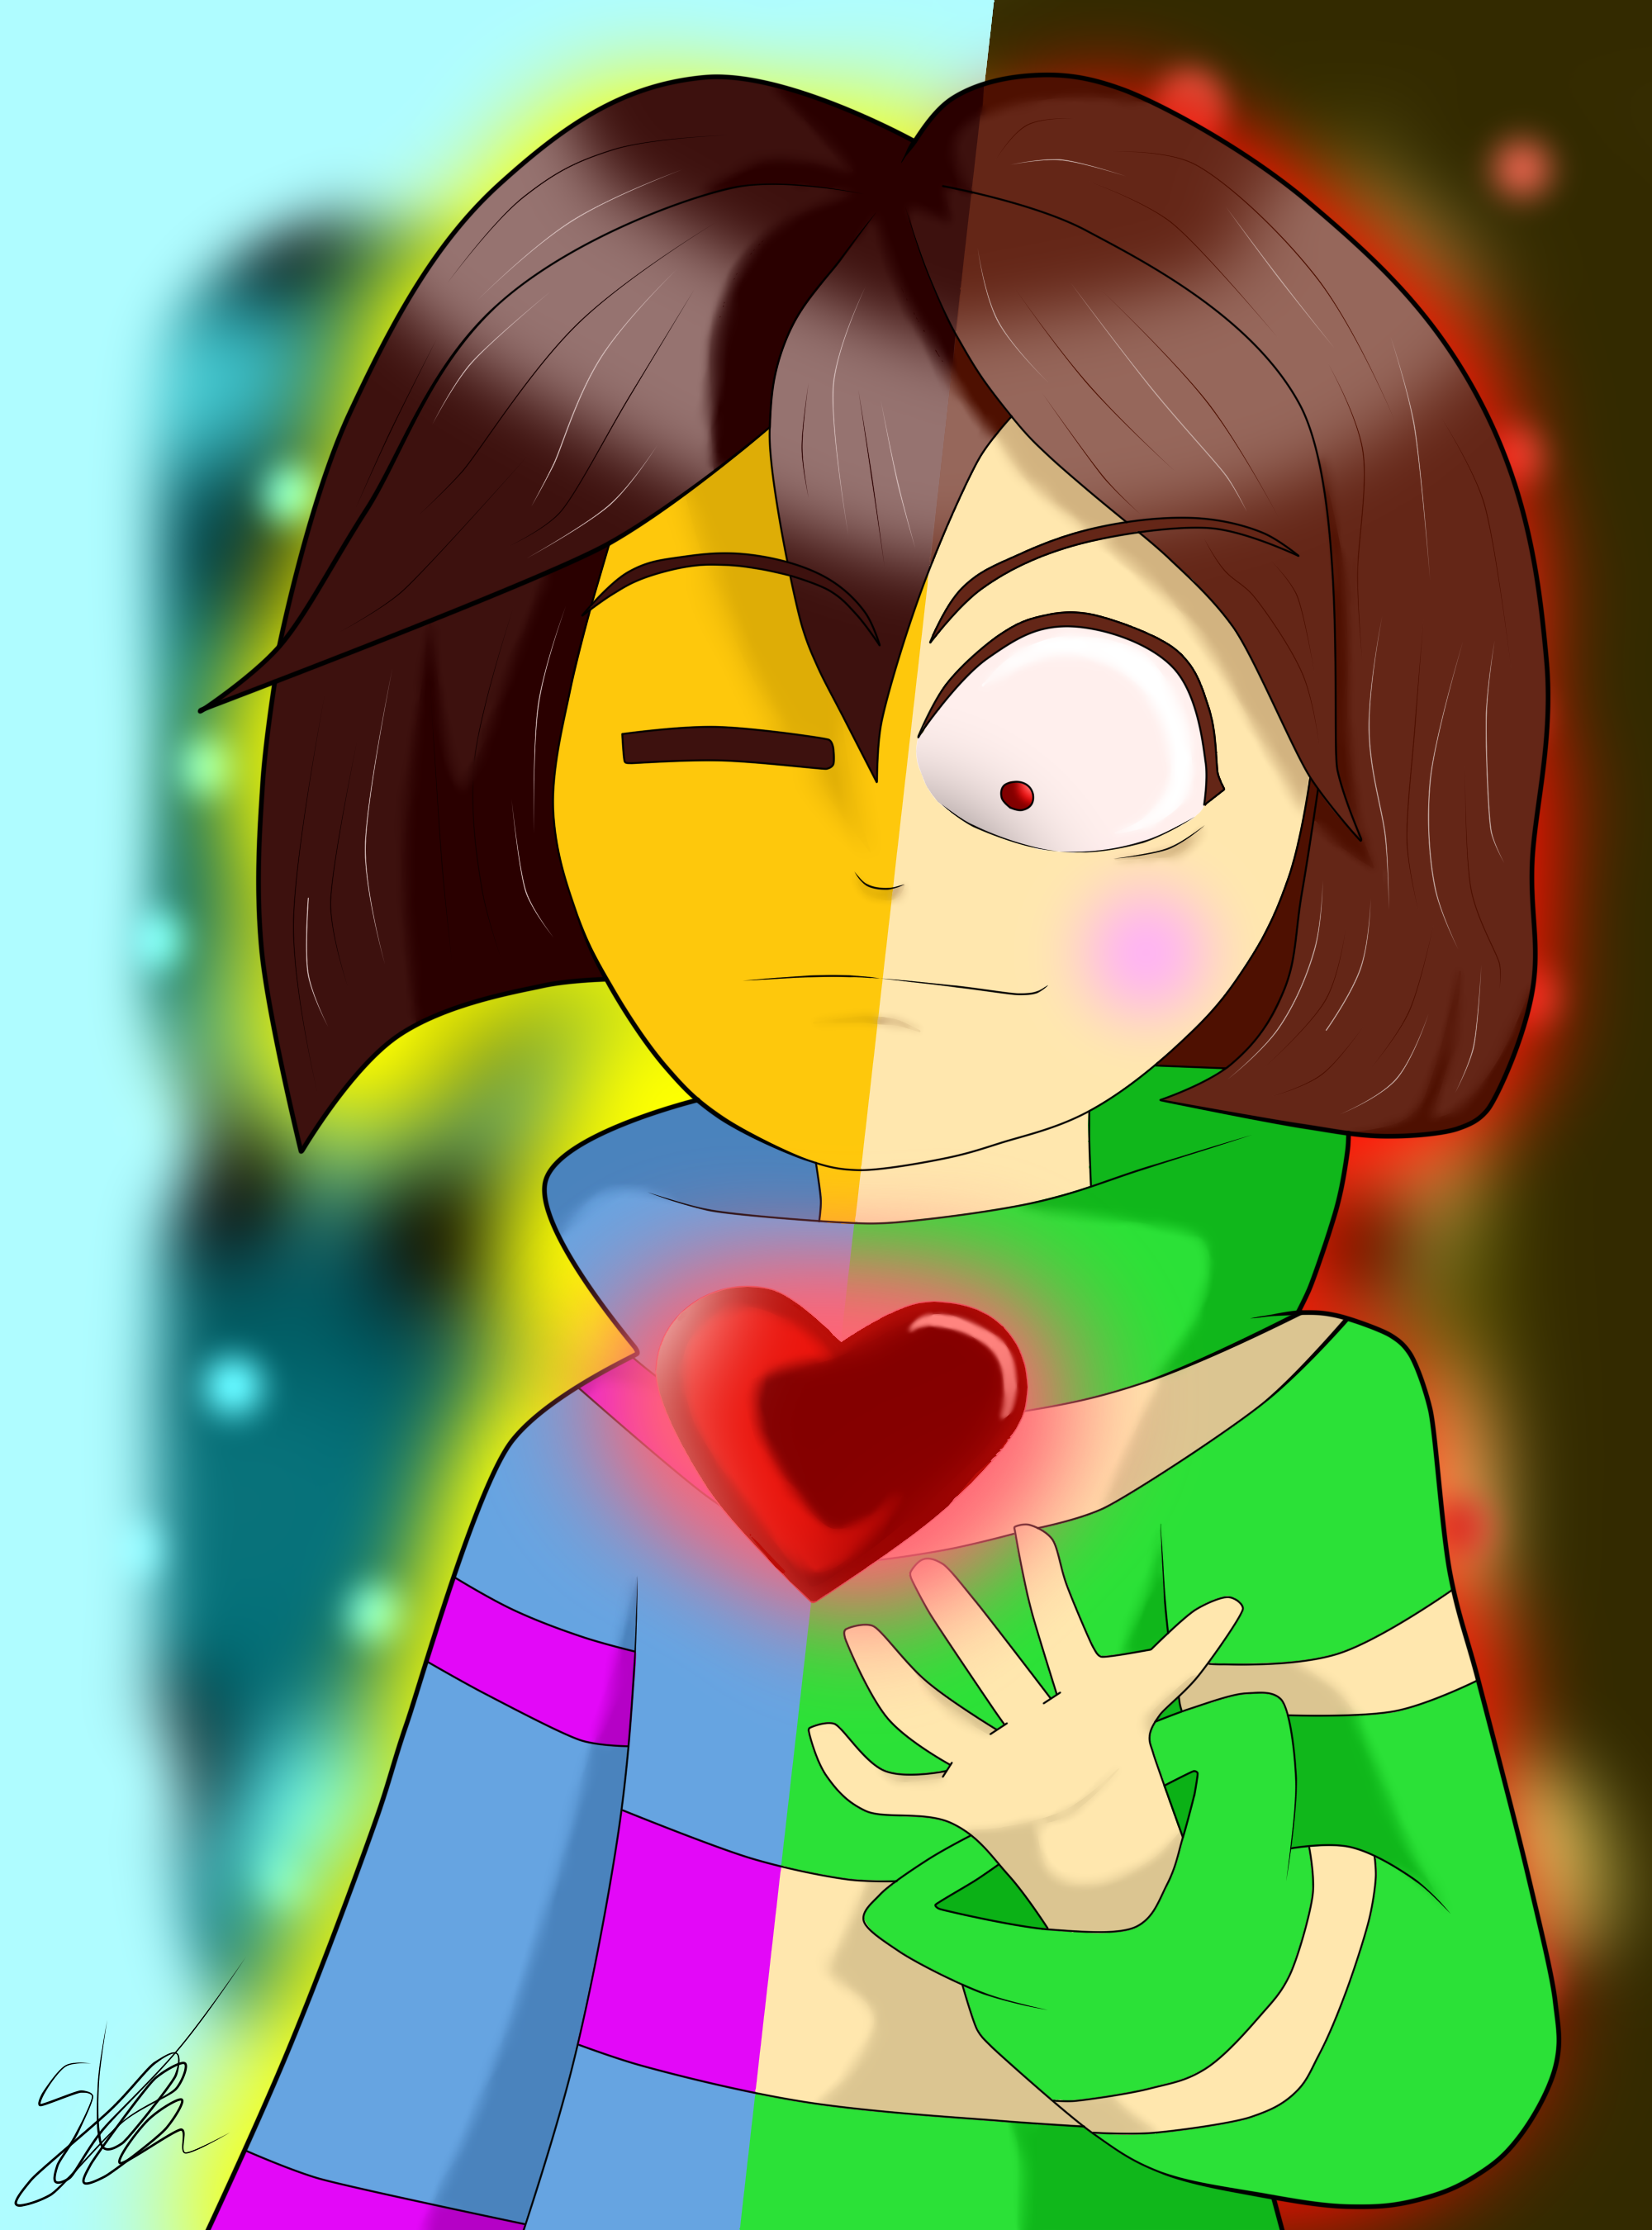 [UNDERTALE] Frisk And Chara by Seb-LK-585